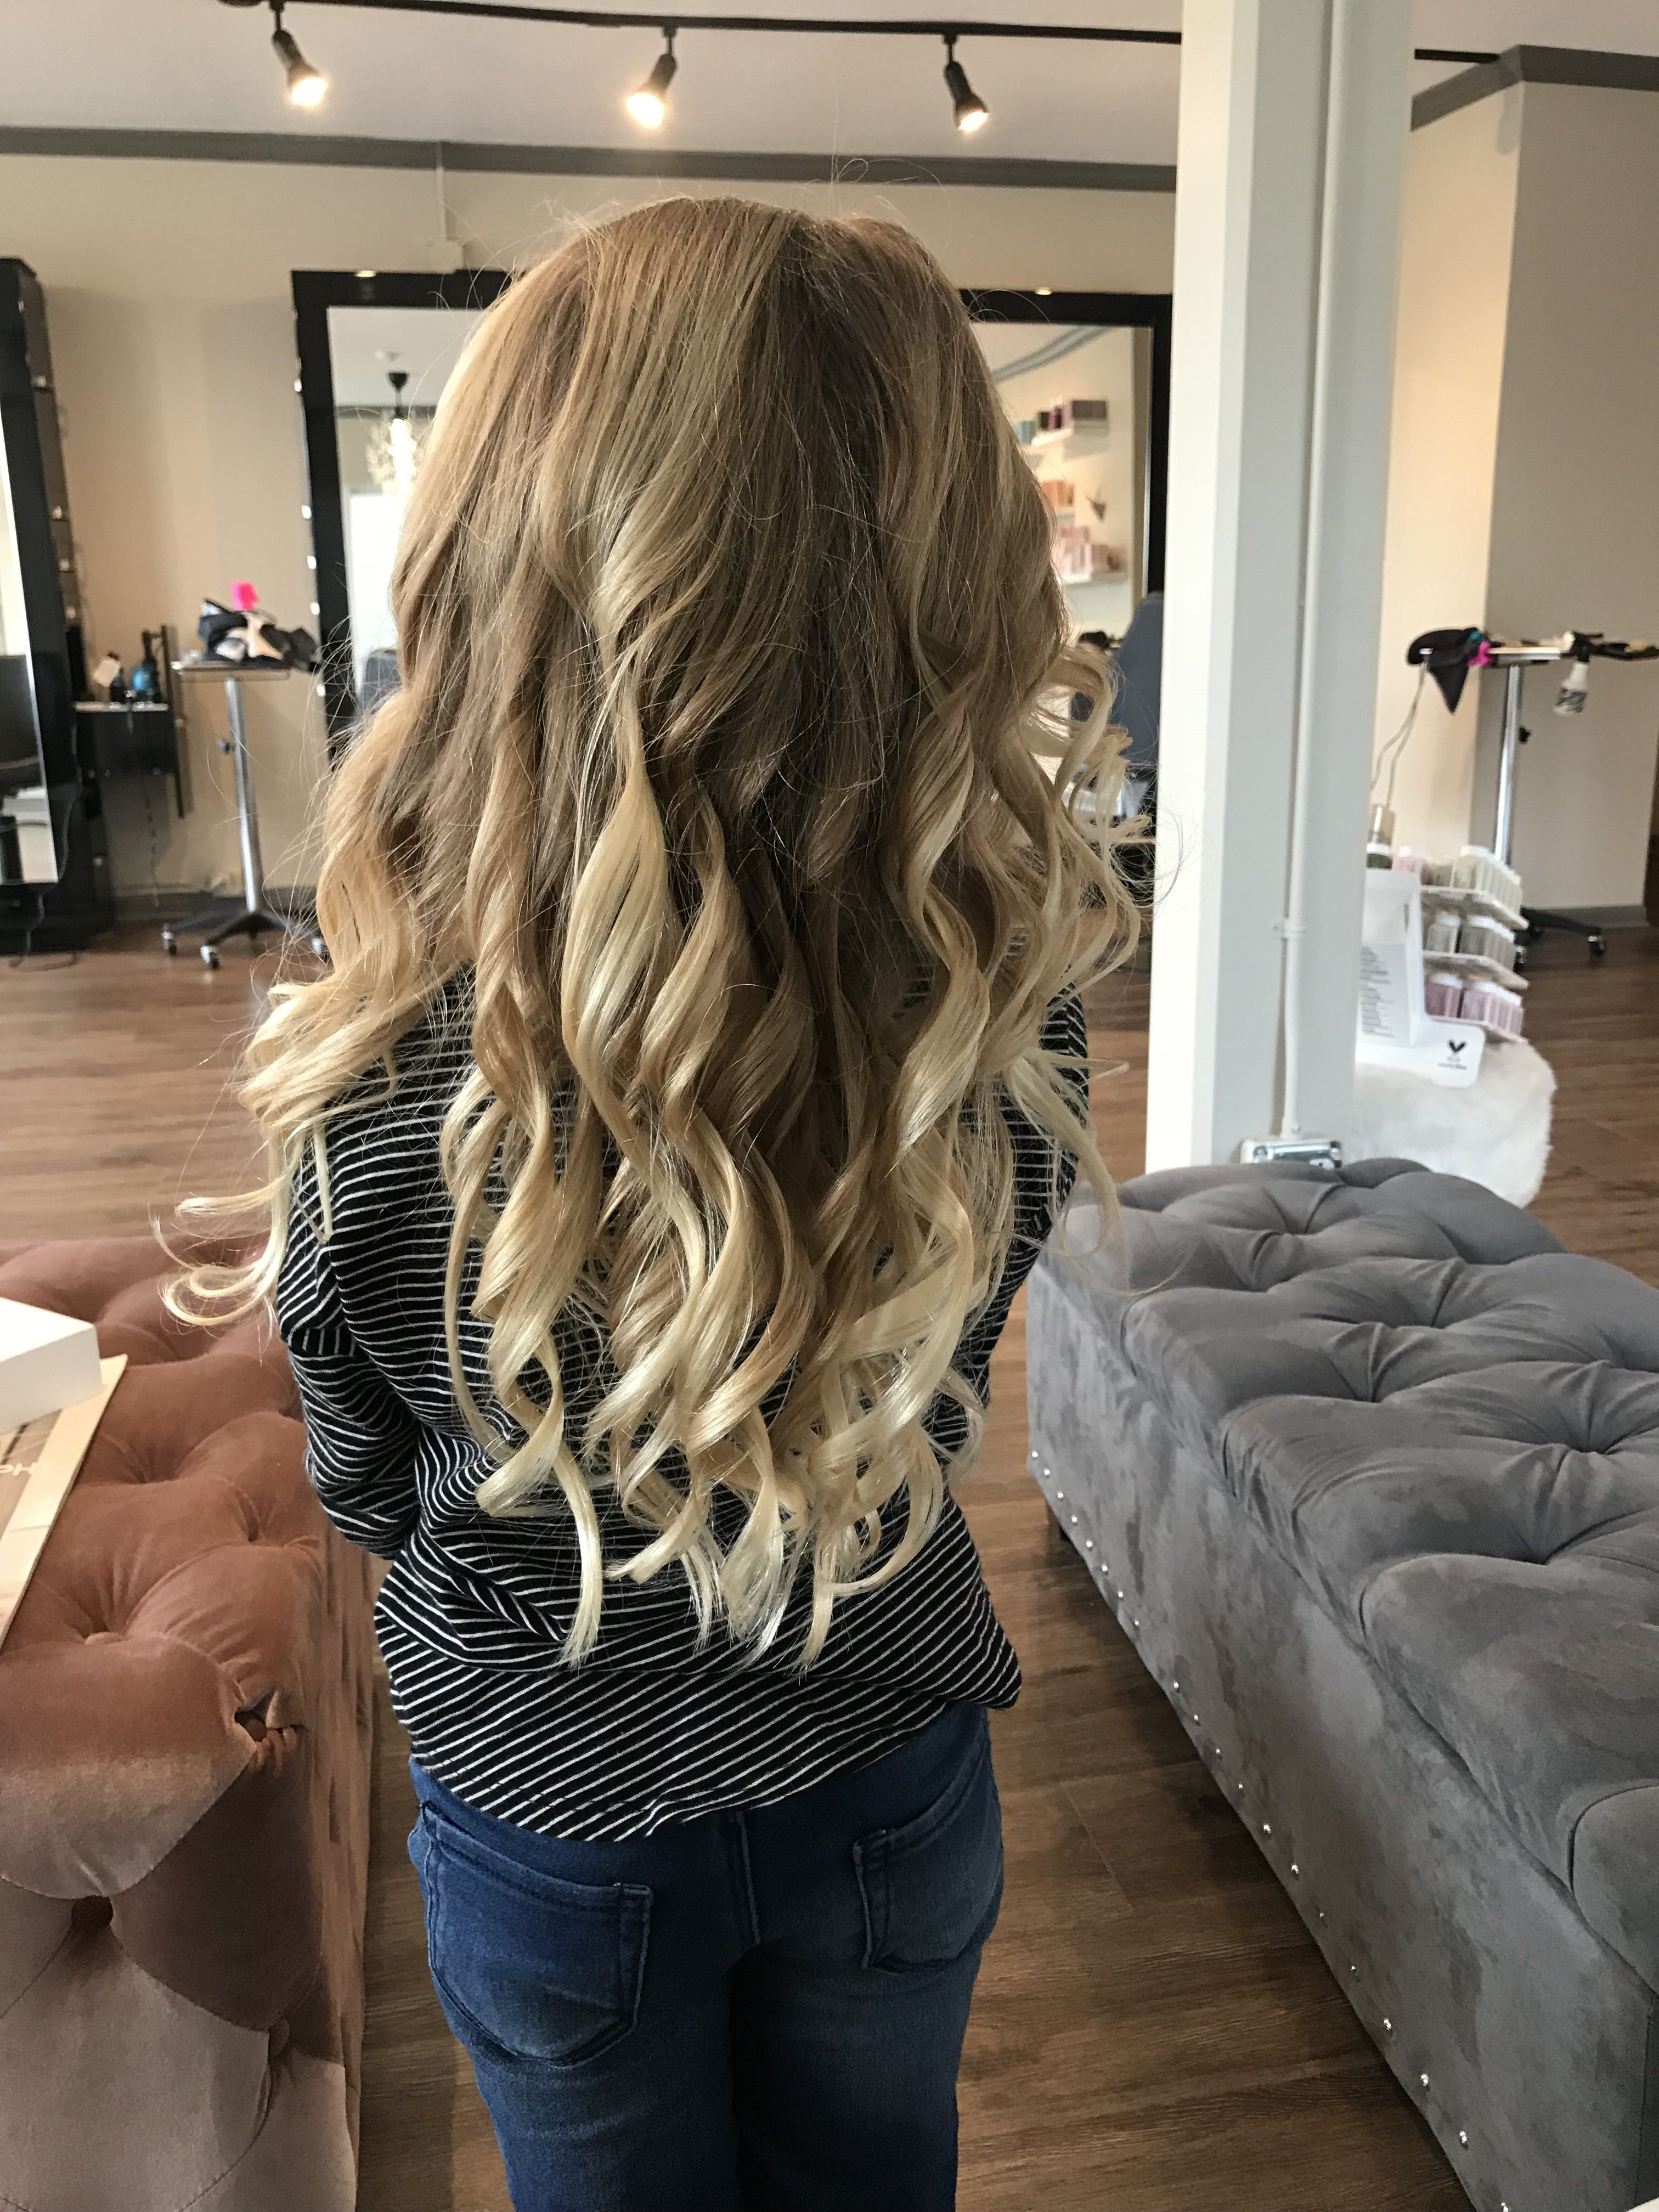 22++ Pictures of stringy hair ideas in 2021